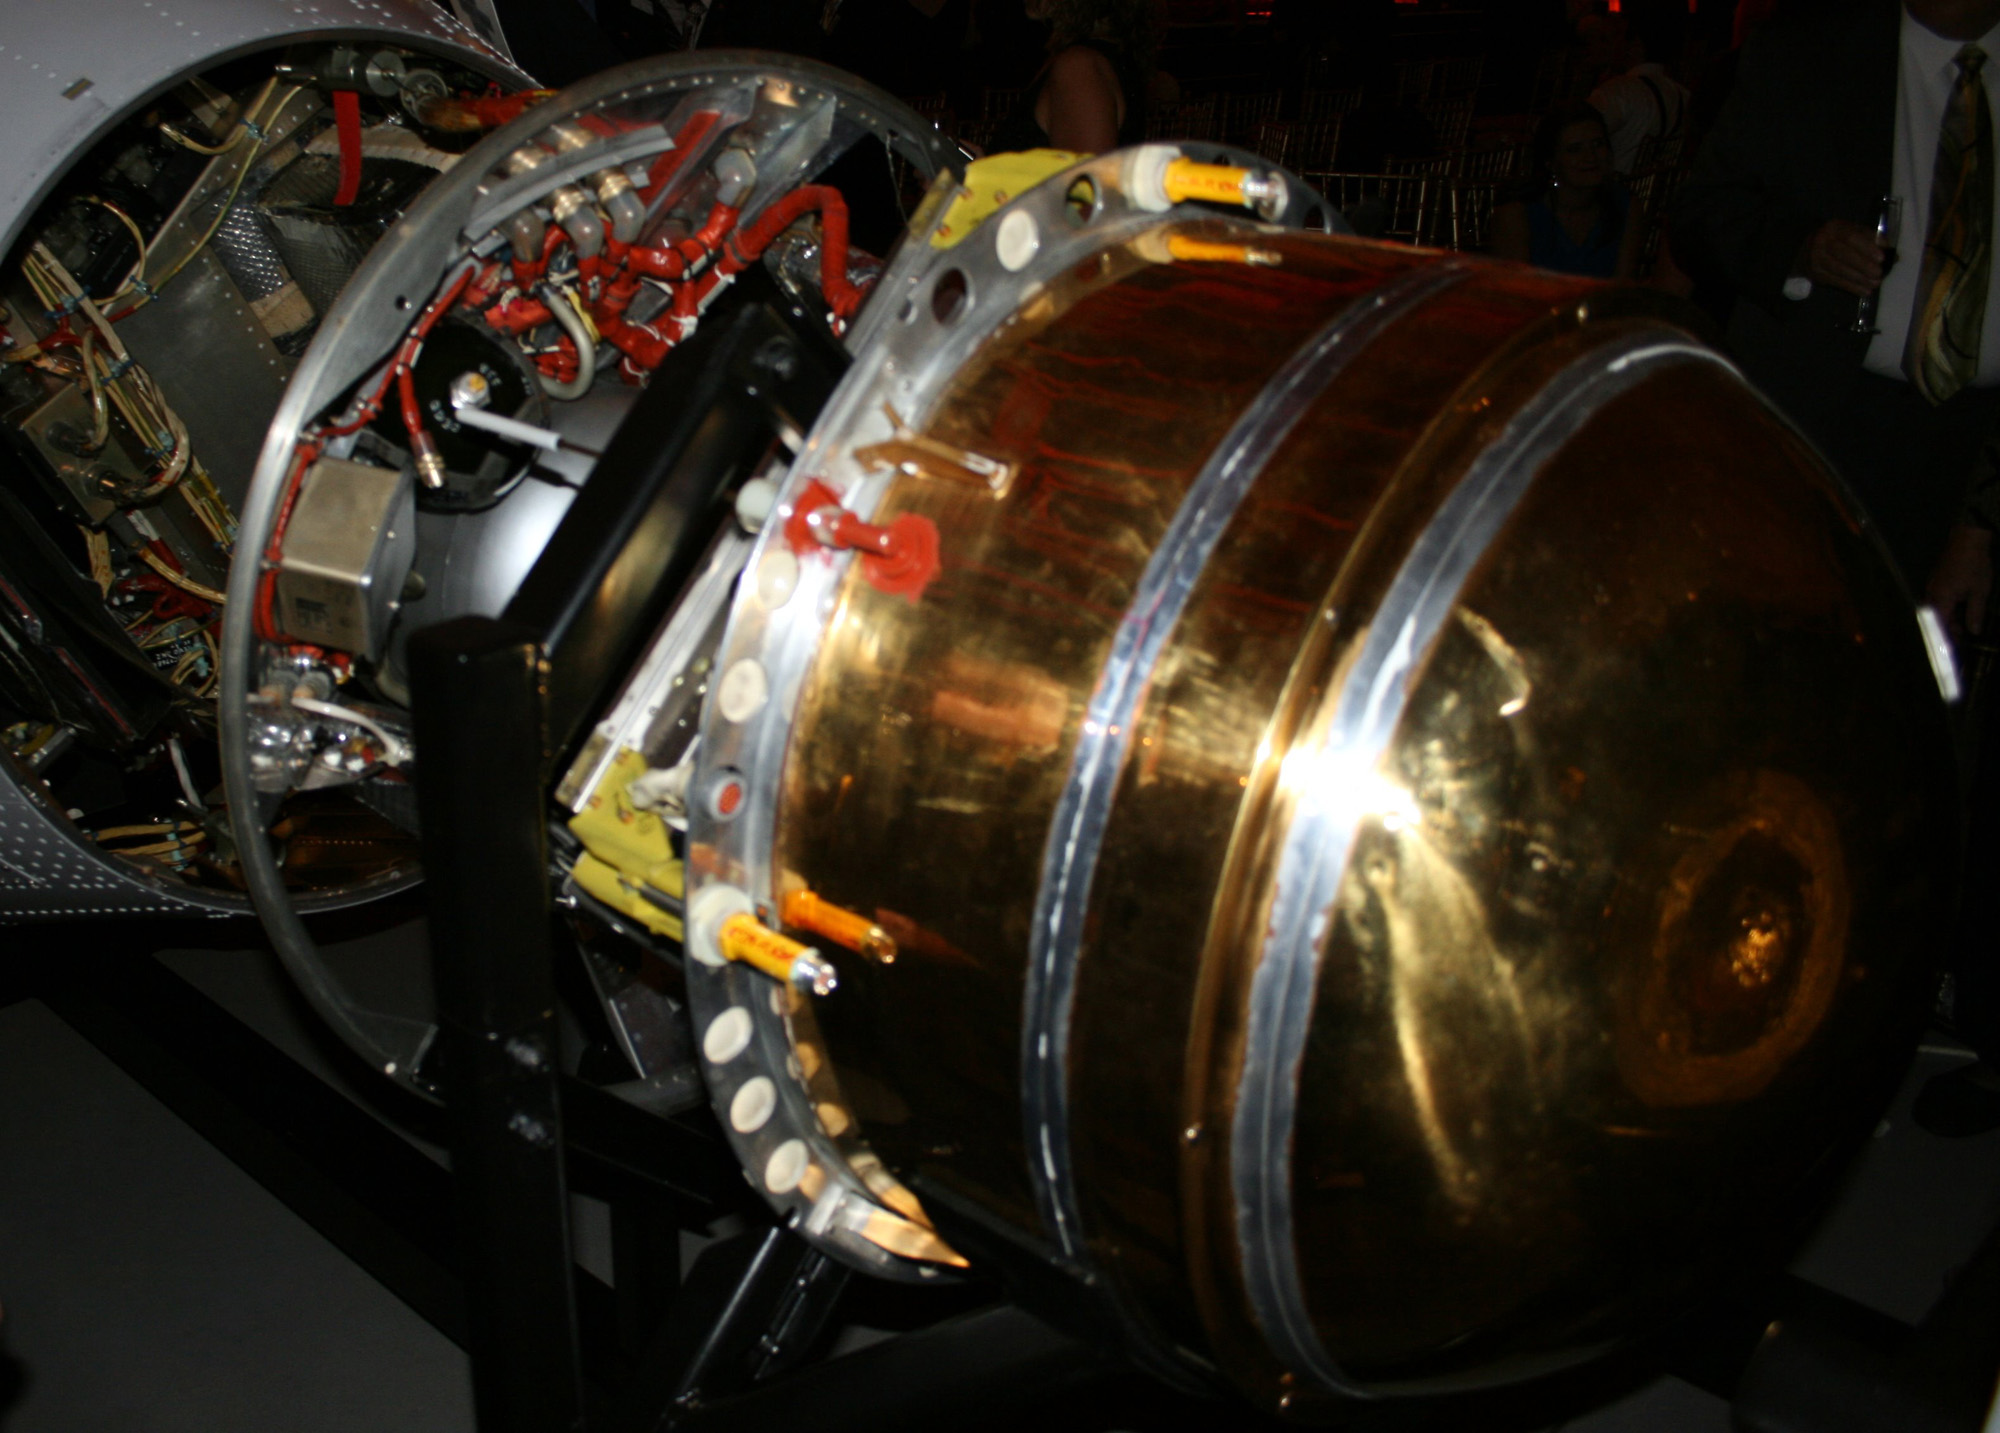 Close-Up View of a GAMBIT Spy Satellite